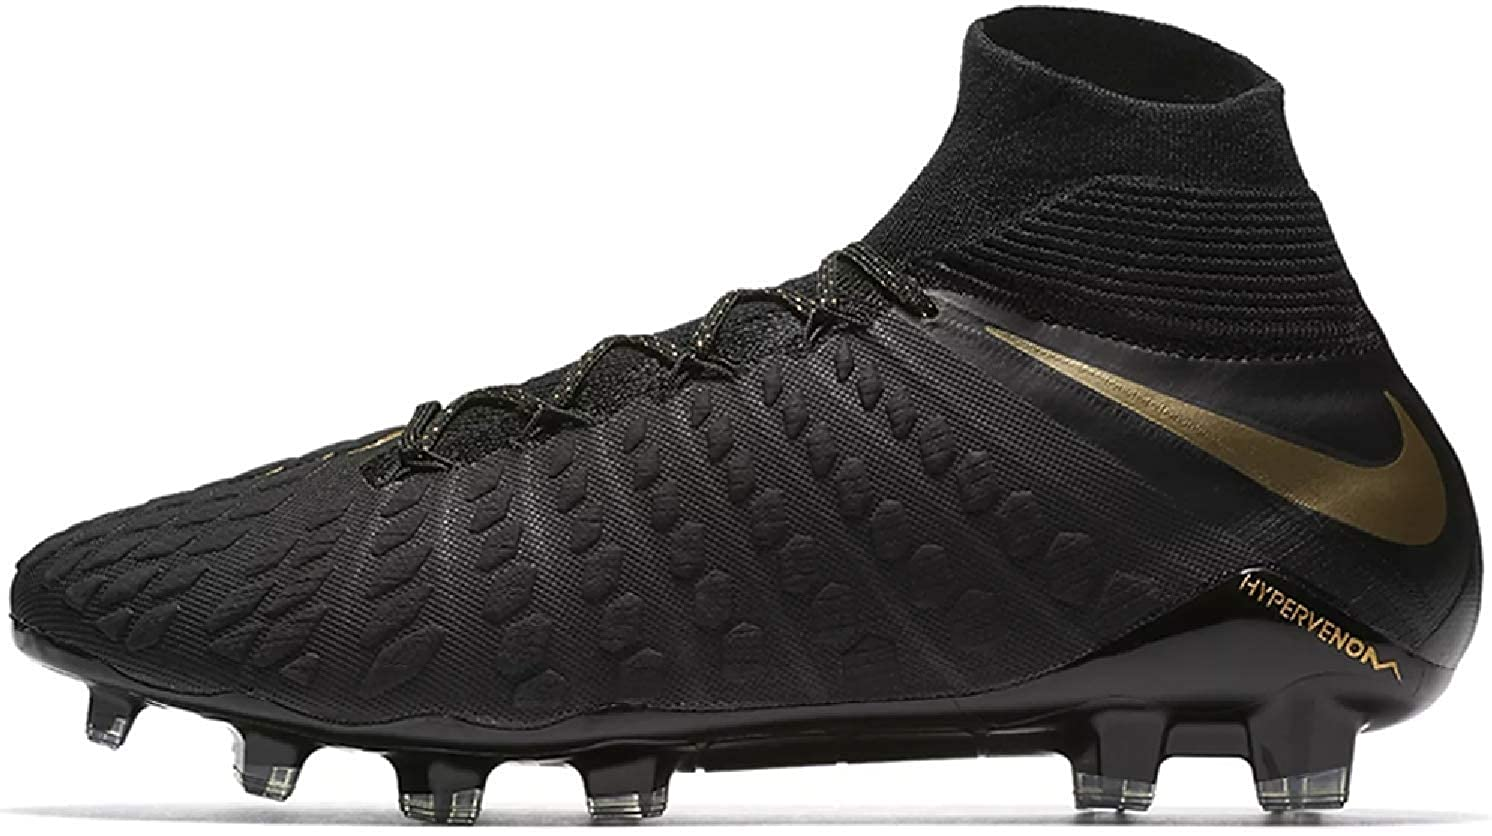 7120889b10a2 Nike Hypervenom Phantom 3 Elite DF FG: Amazon.co.uk: Shoes & Bags